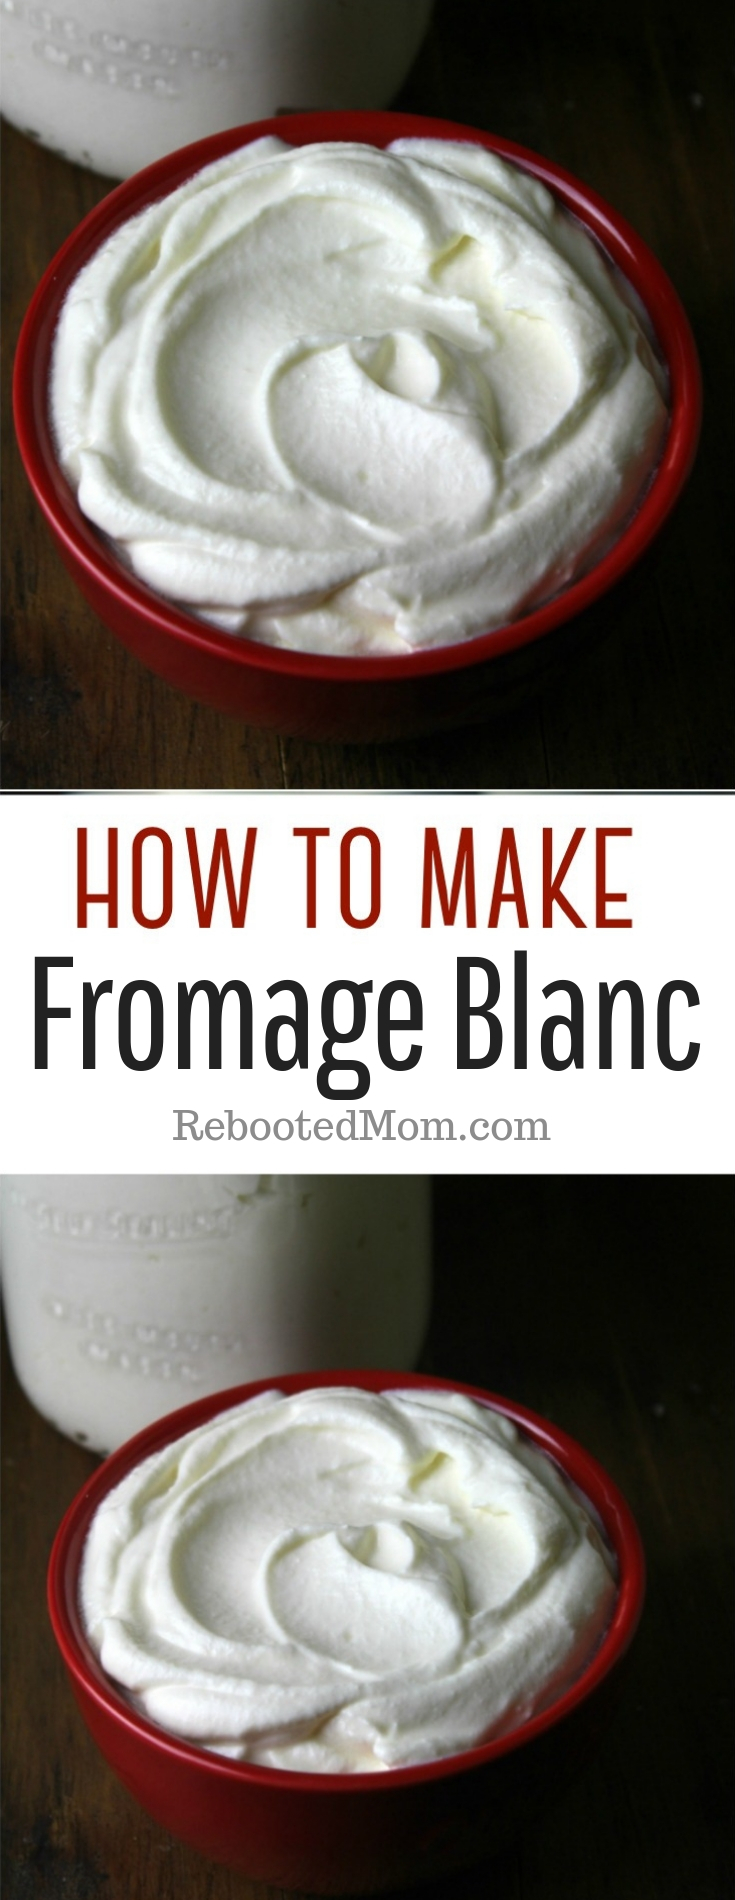 Fromage Blanc is a soft, spreadable cheese with a mild flavor. Learn how to make it easily at home with a few simple ingredients!